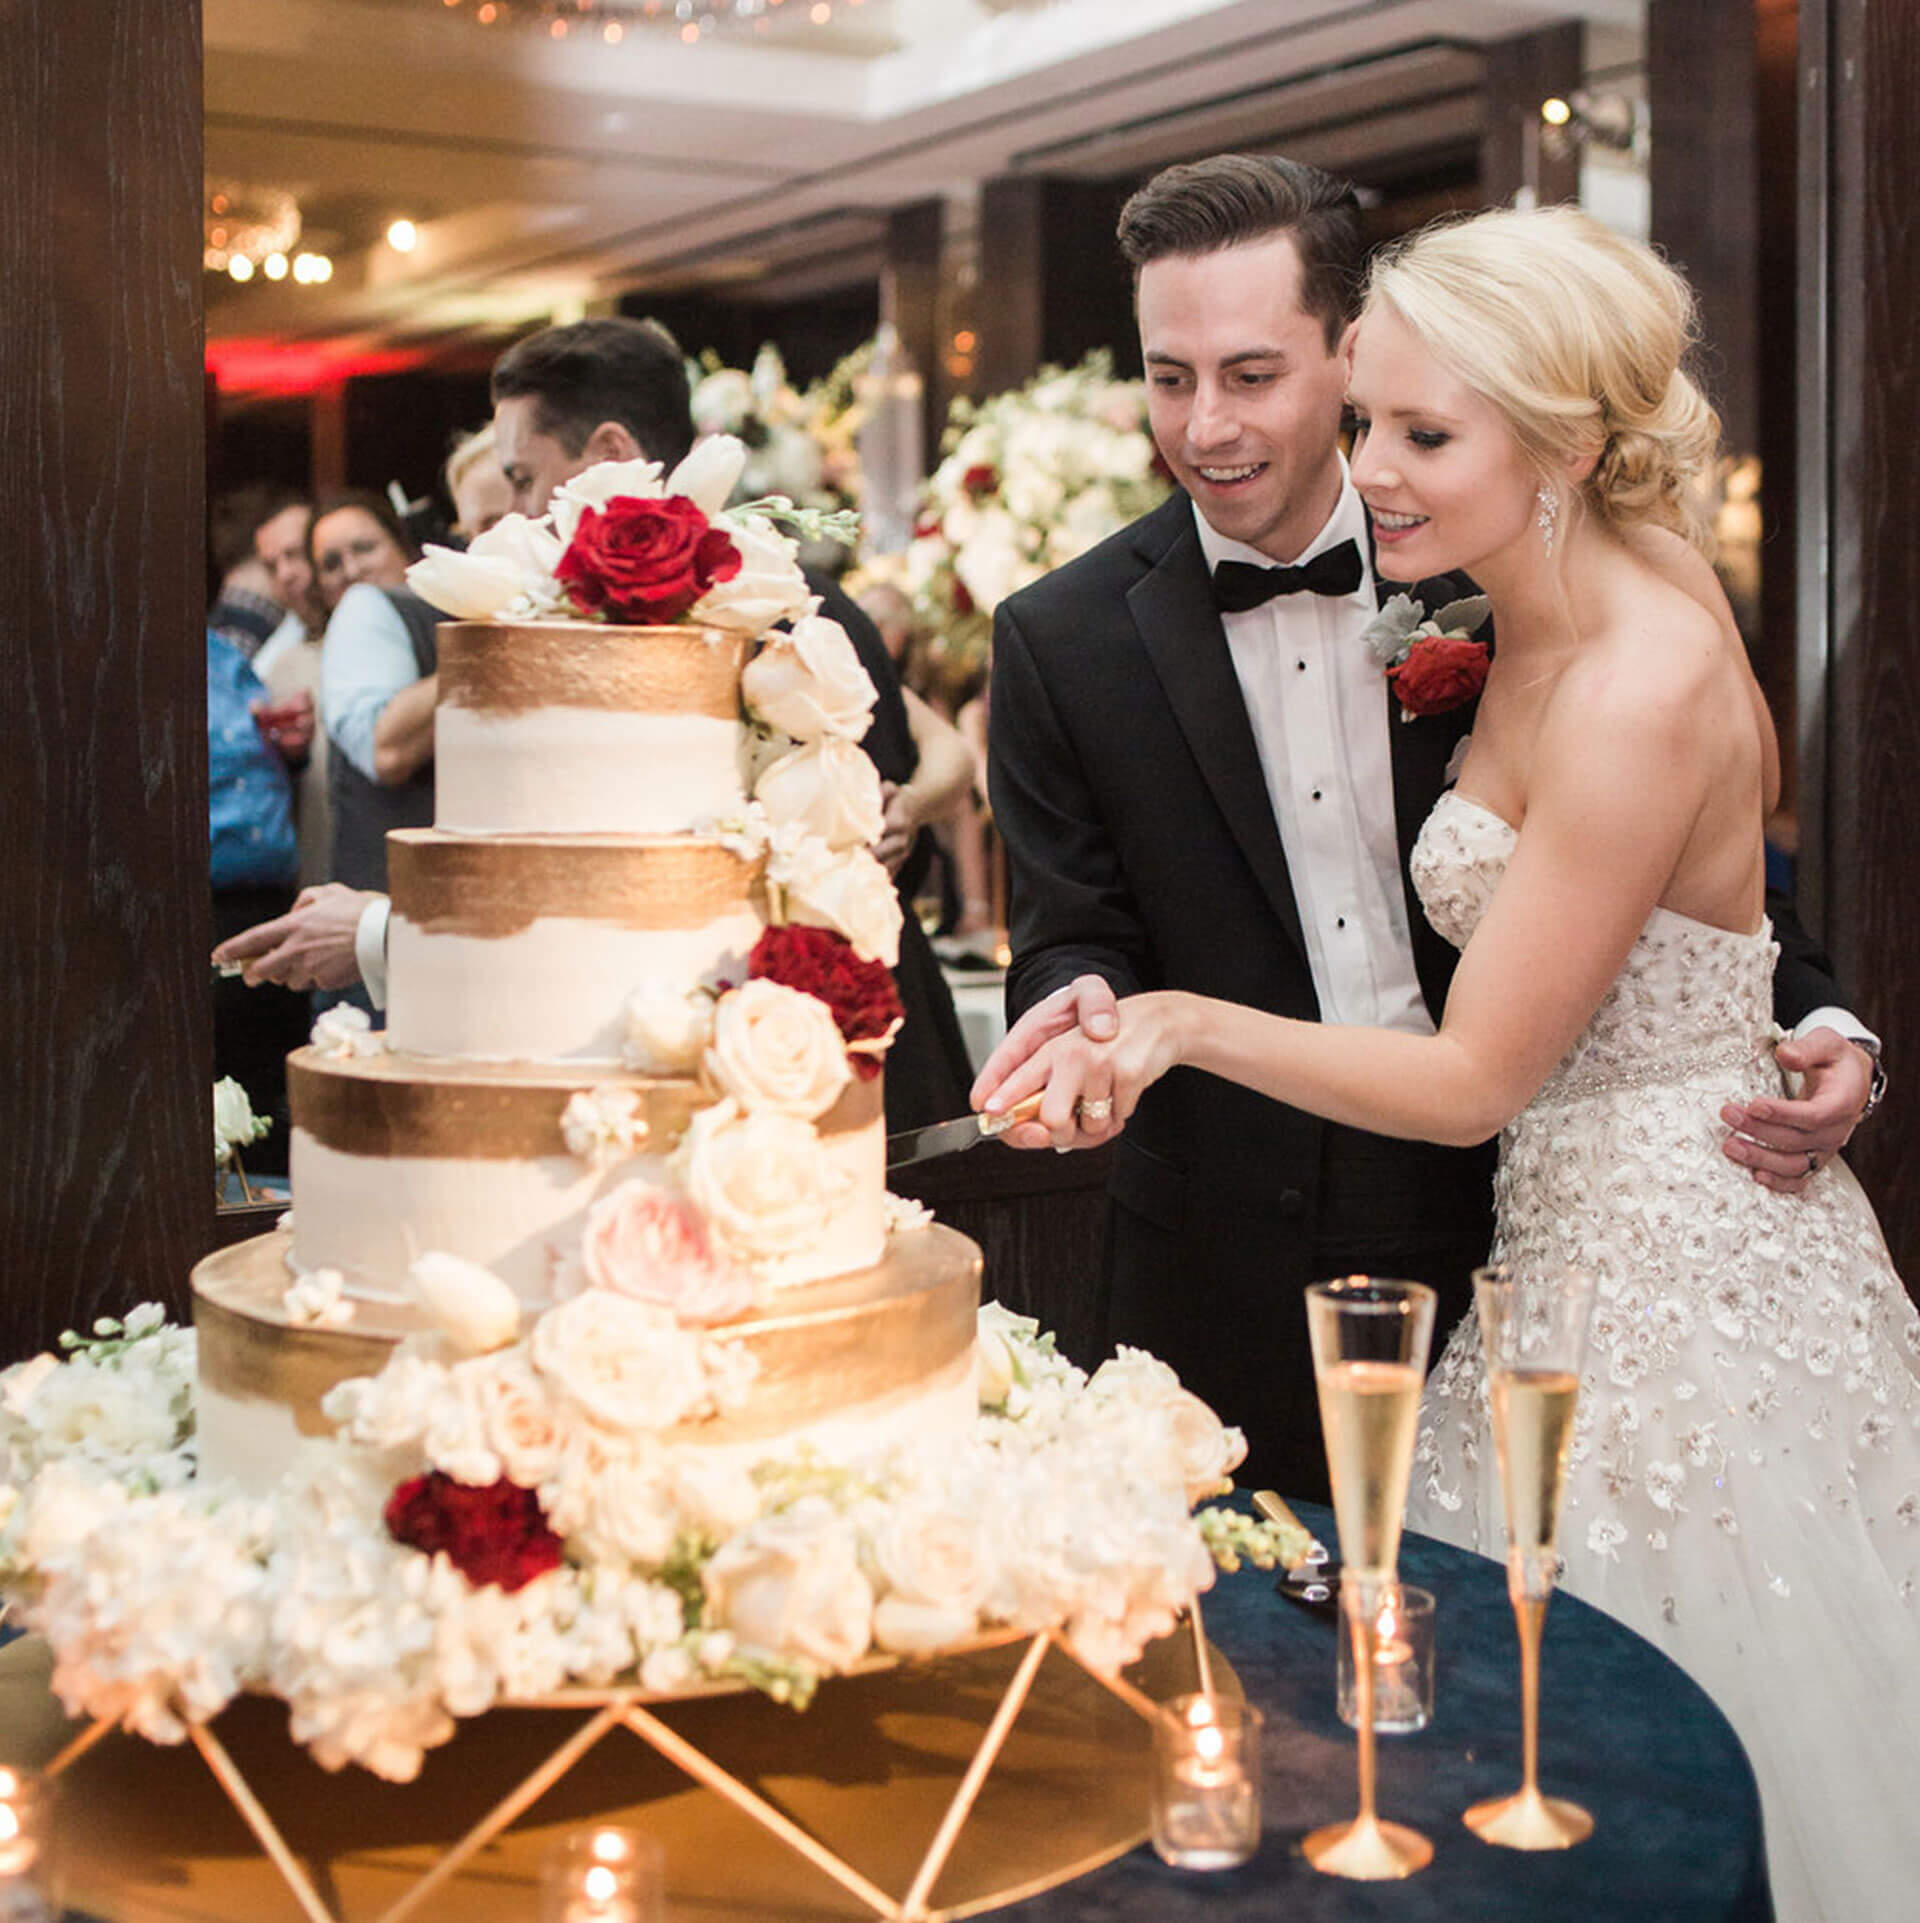 Premier cakes in dallas texas fancy cakes by lauren kitchens 2018 fancy cakes by lauren kitchens junglespirit Choice Image